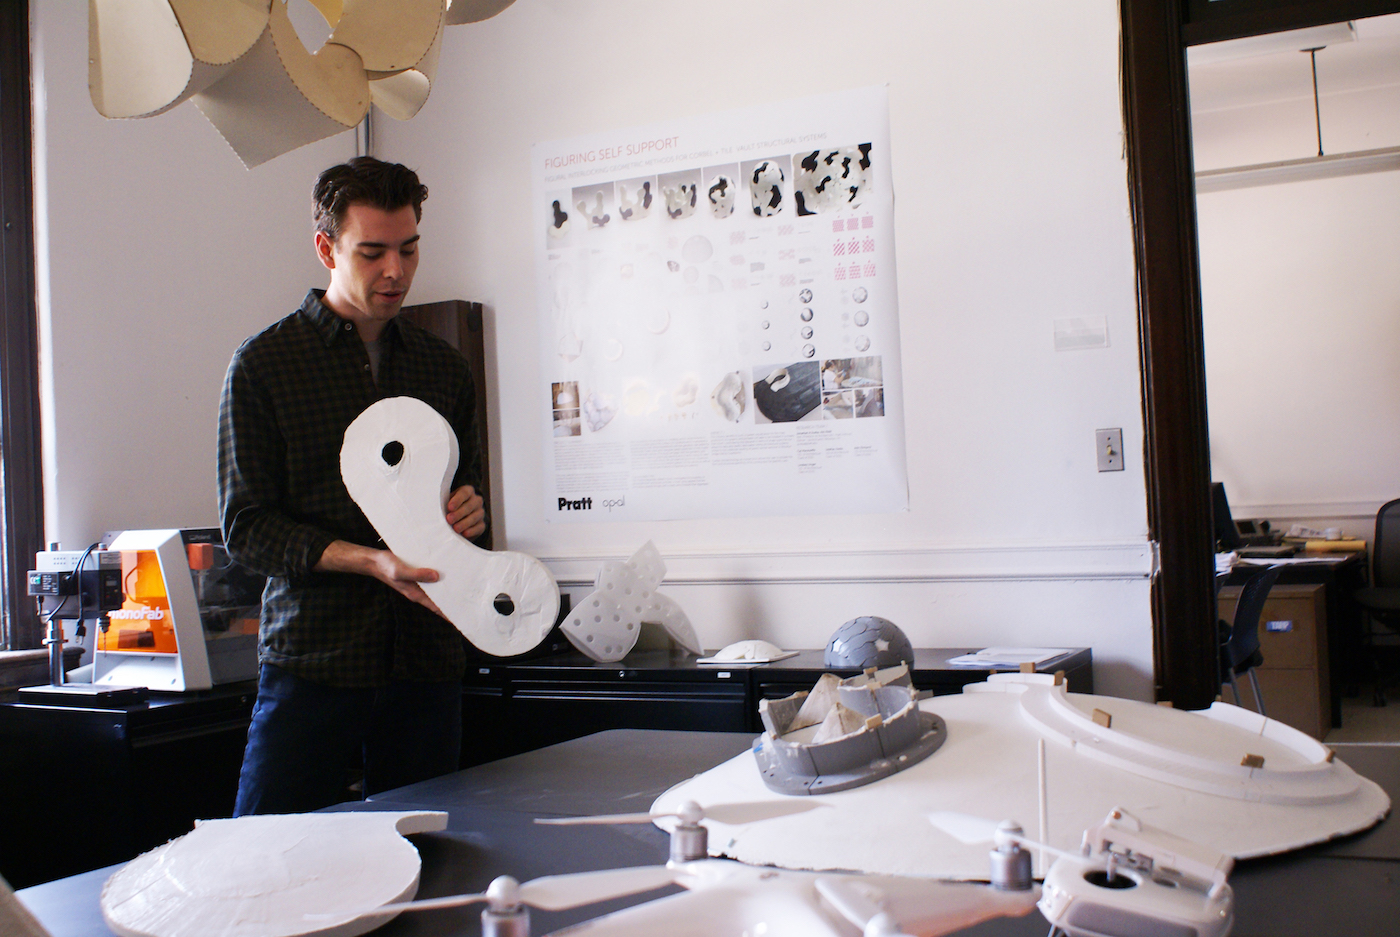 Cal MacAuliffe, BArch '21, presents Figuring Self Support, a project led by Jonathan Scelsa, assistant professor of Undergraduate Architecture, at the 2019 Research Open House (photo by Daniel Terna)